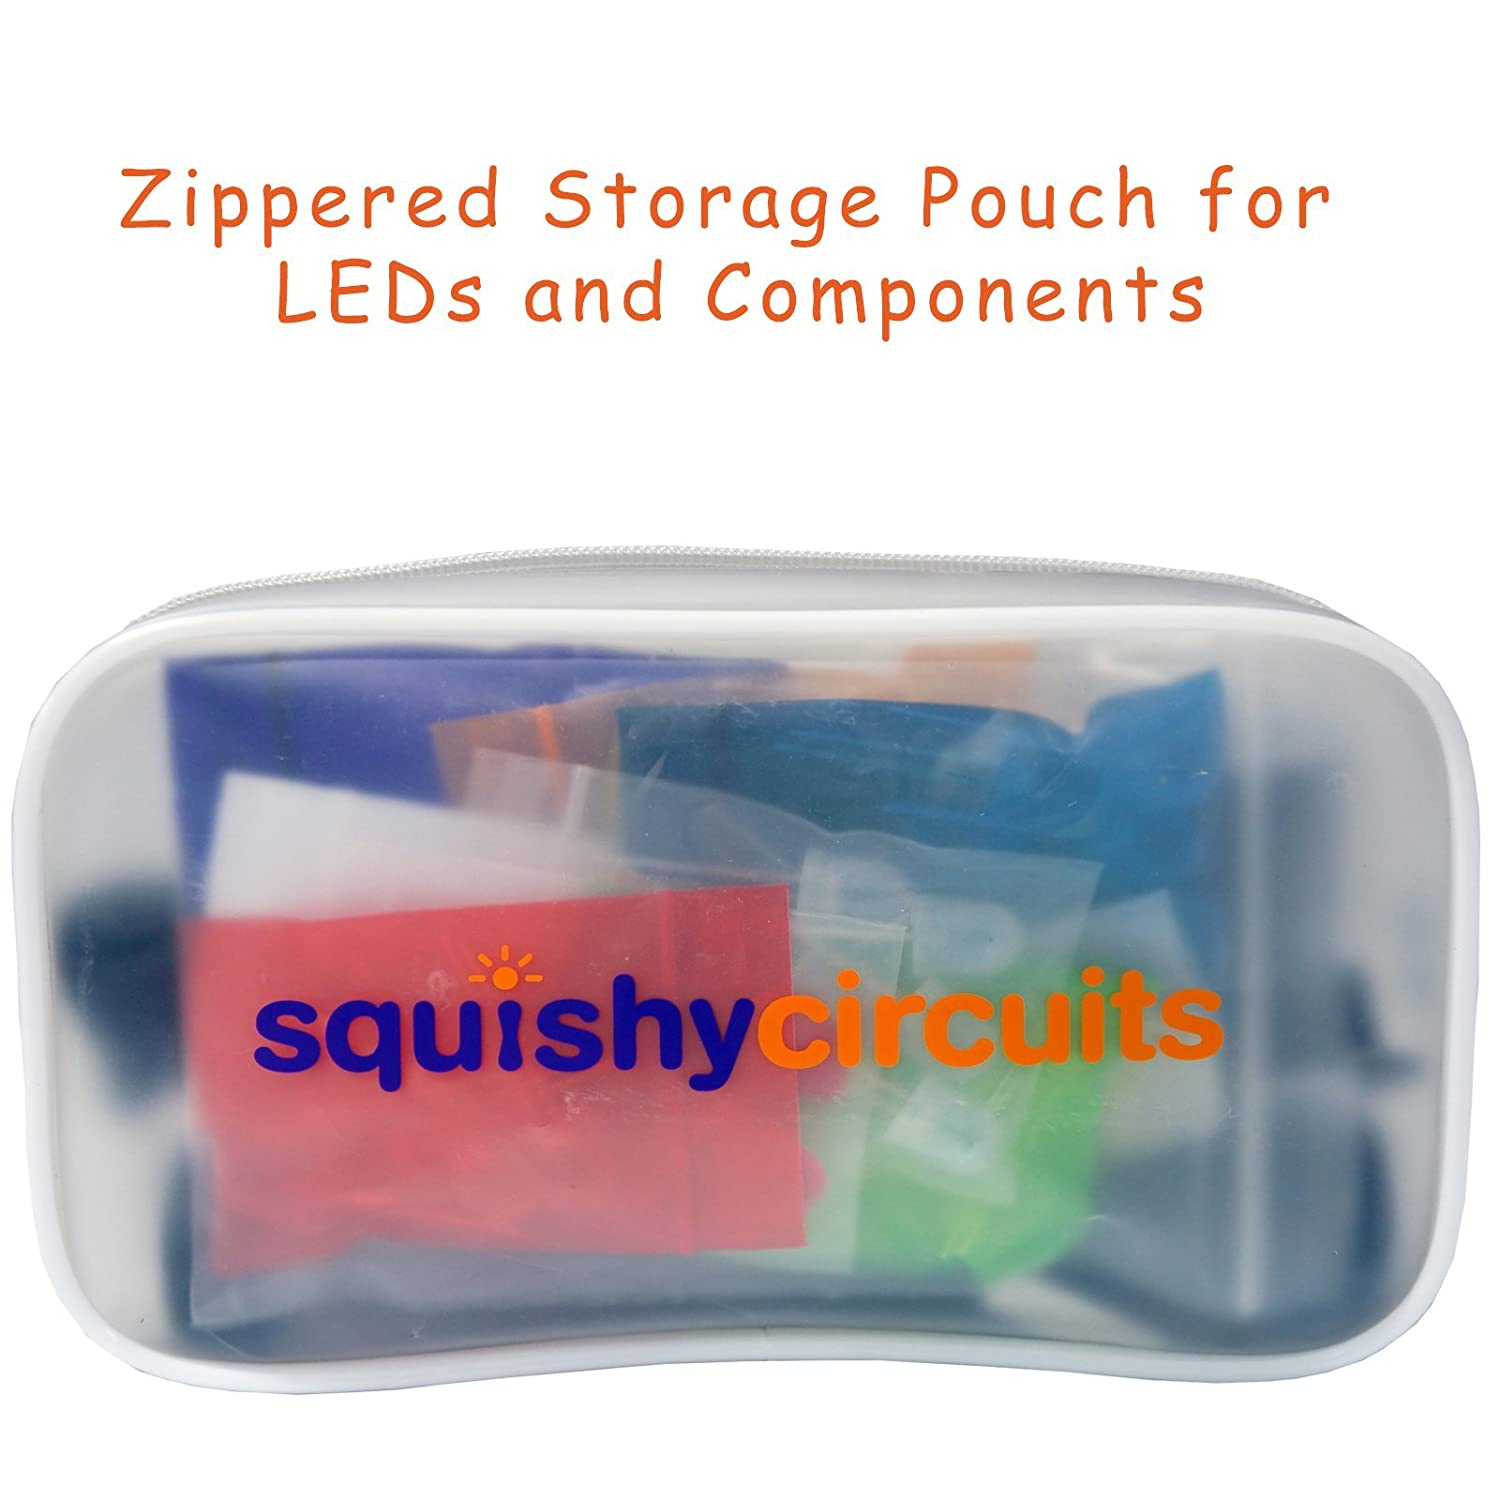 Squishy Circuits Deluxe Kit Toys Games Making Conductive Dough